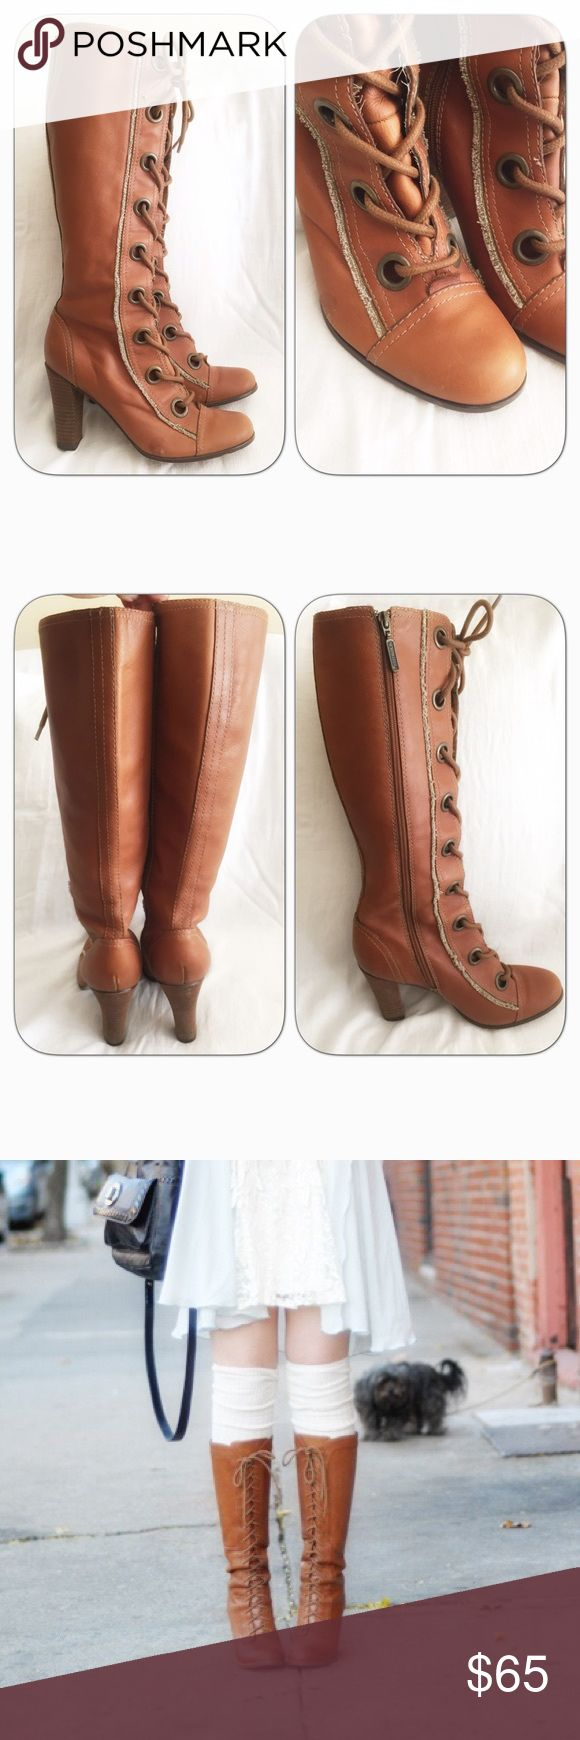 """Brown Lace Up Seychelles Boots Amazing vintage style lace up boots. 3.5"""" heels. Adjustable with side zipper and front laces. No flaws noted. Re-poshed as they didn't fit me. 😕 Seychelles Shoes Lace Up Boots"""